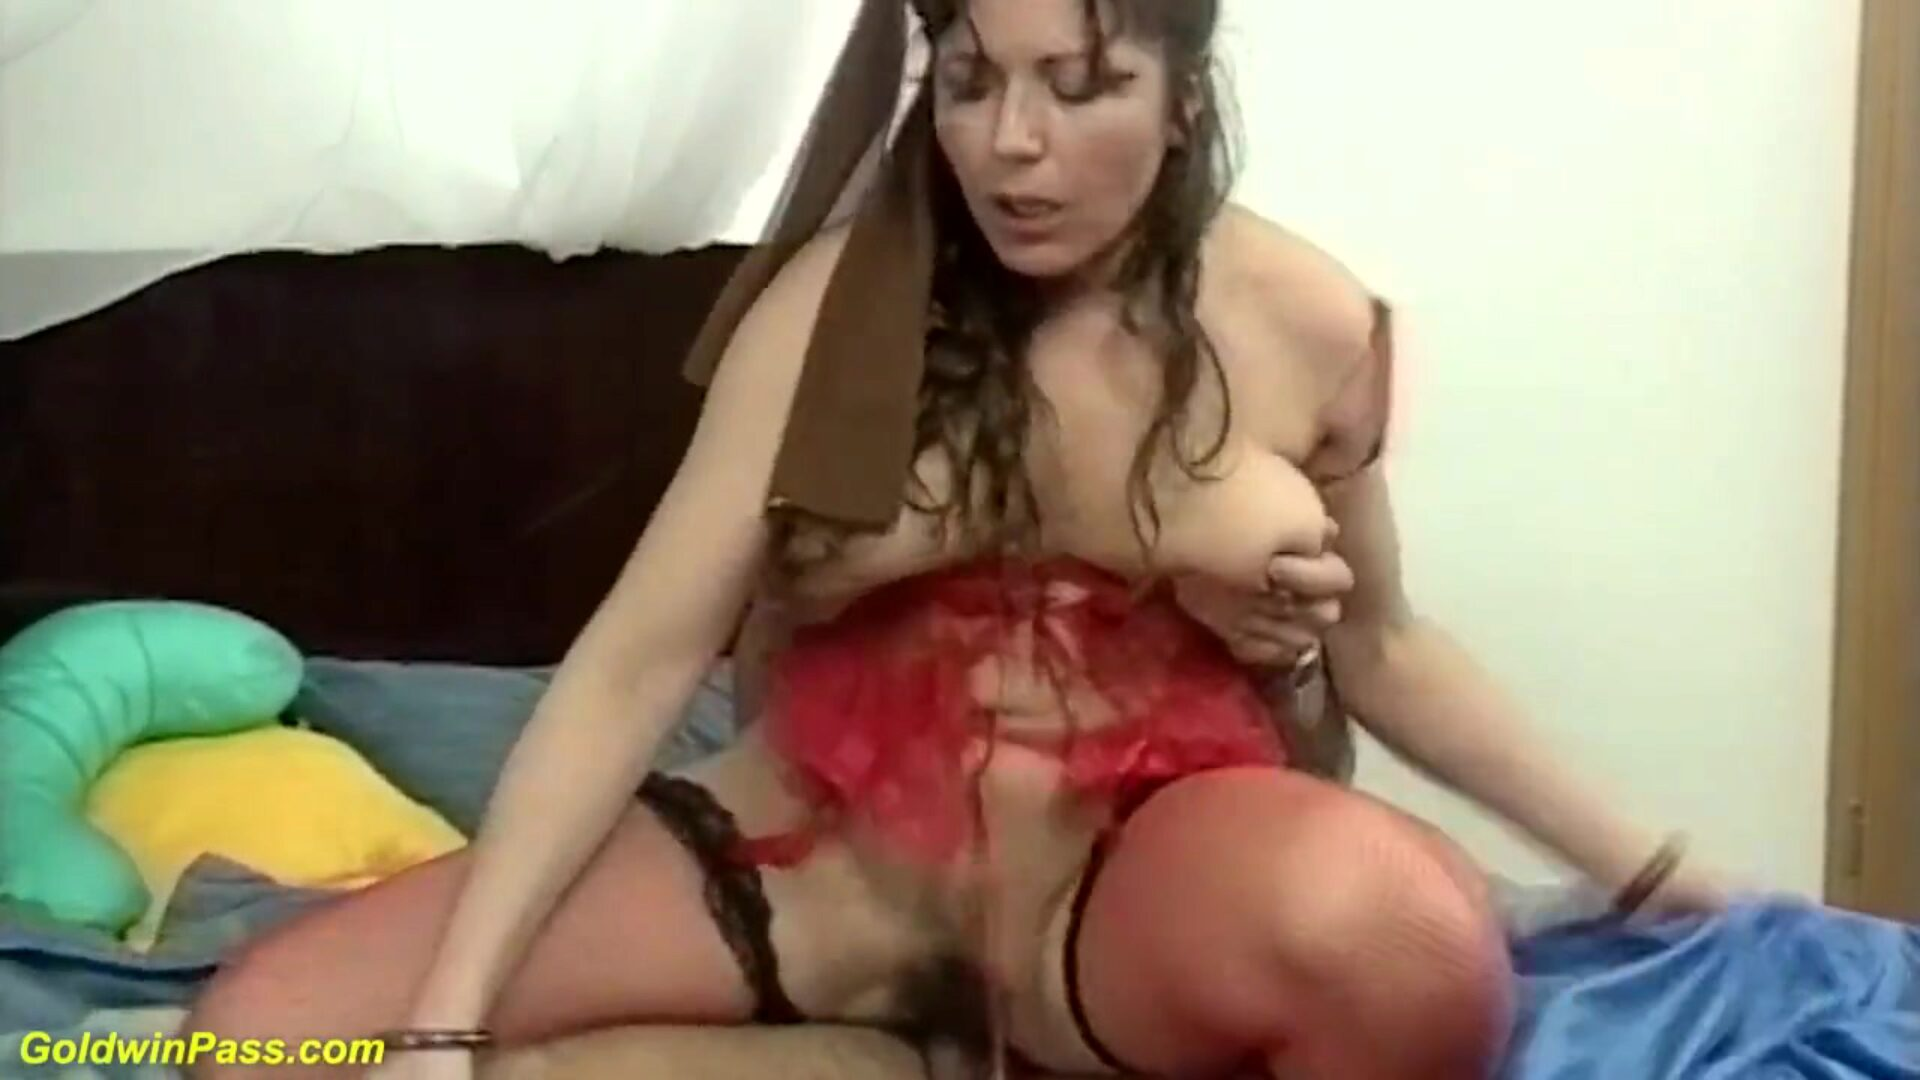 breasty stepmom's hairy arse ruined sexy big congenital boob stepmoms taut bushy chocolate hole gets rough wrecked by stepsons large pecker